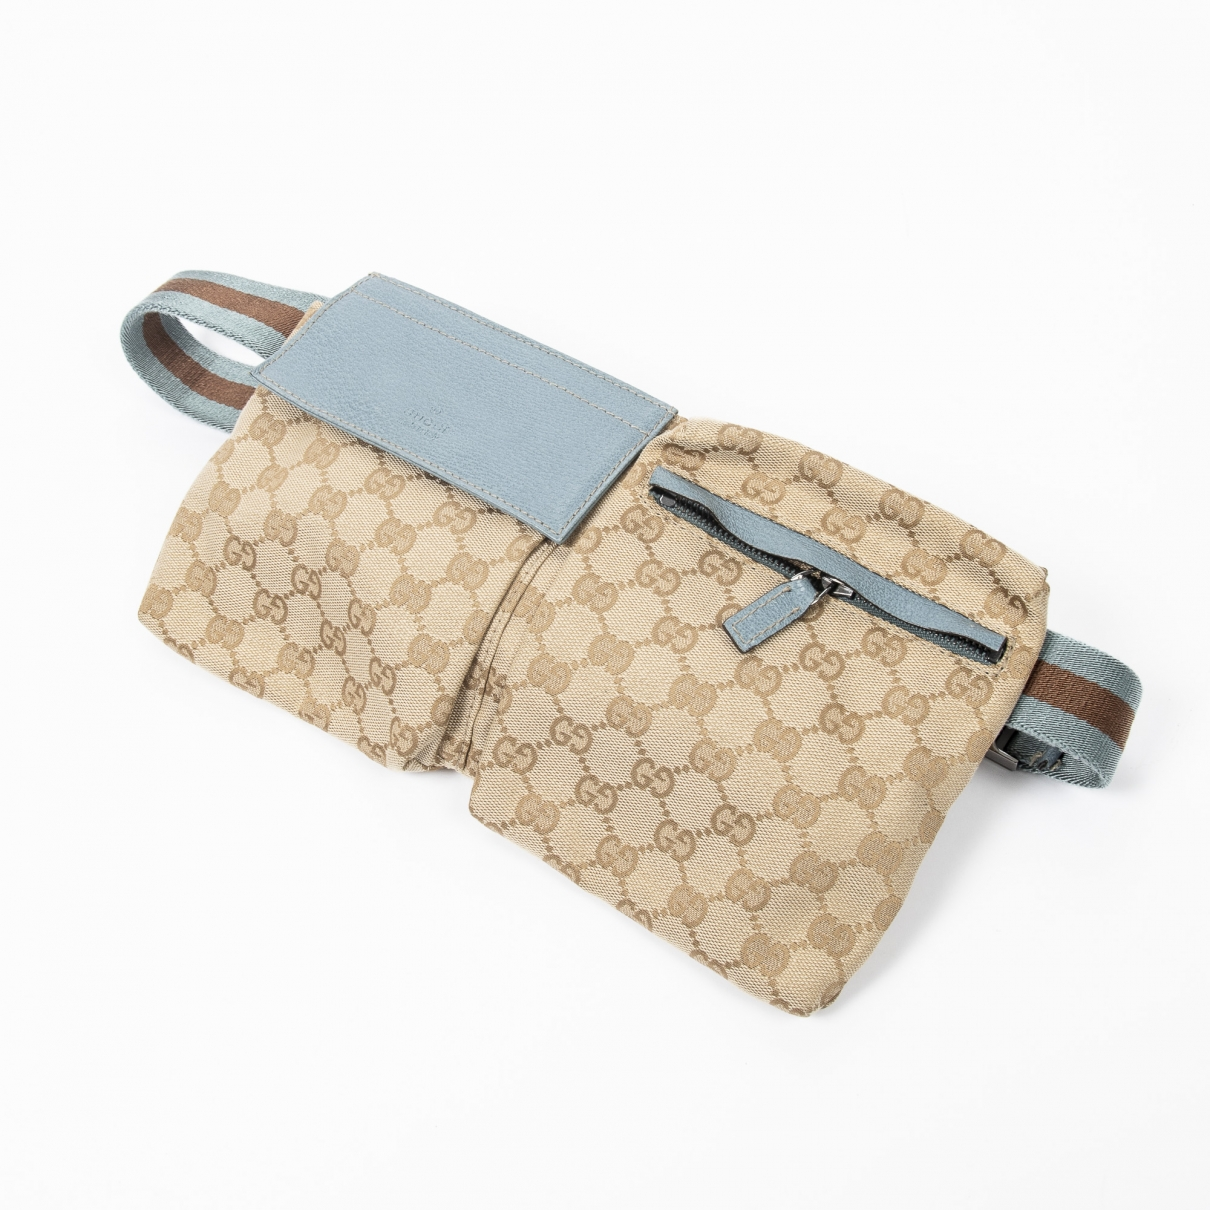 Gucci \N Beige Leather handbag for Women \N